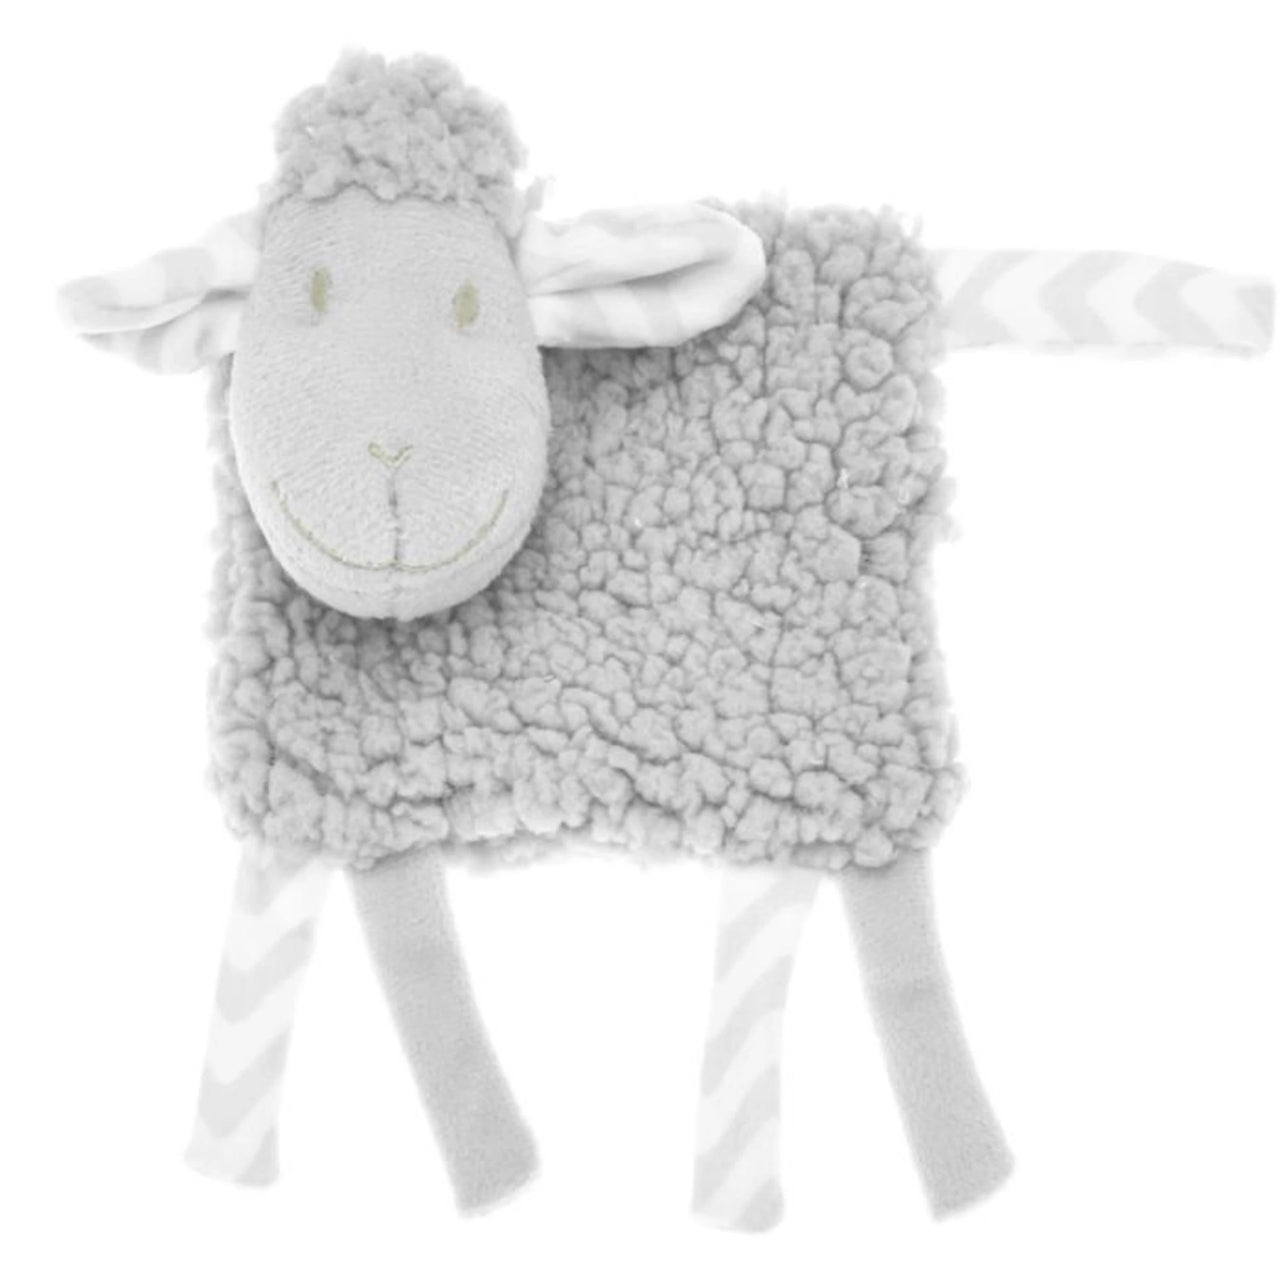 Meet Cuddles the lamb! This super softee rattle is a must have for any newborn to make them feel cosy and secure.